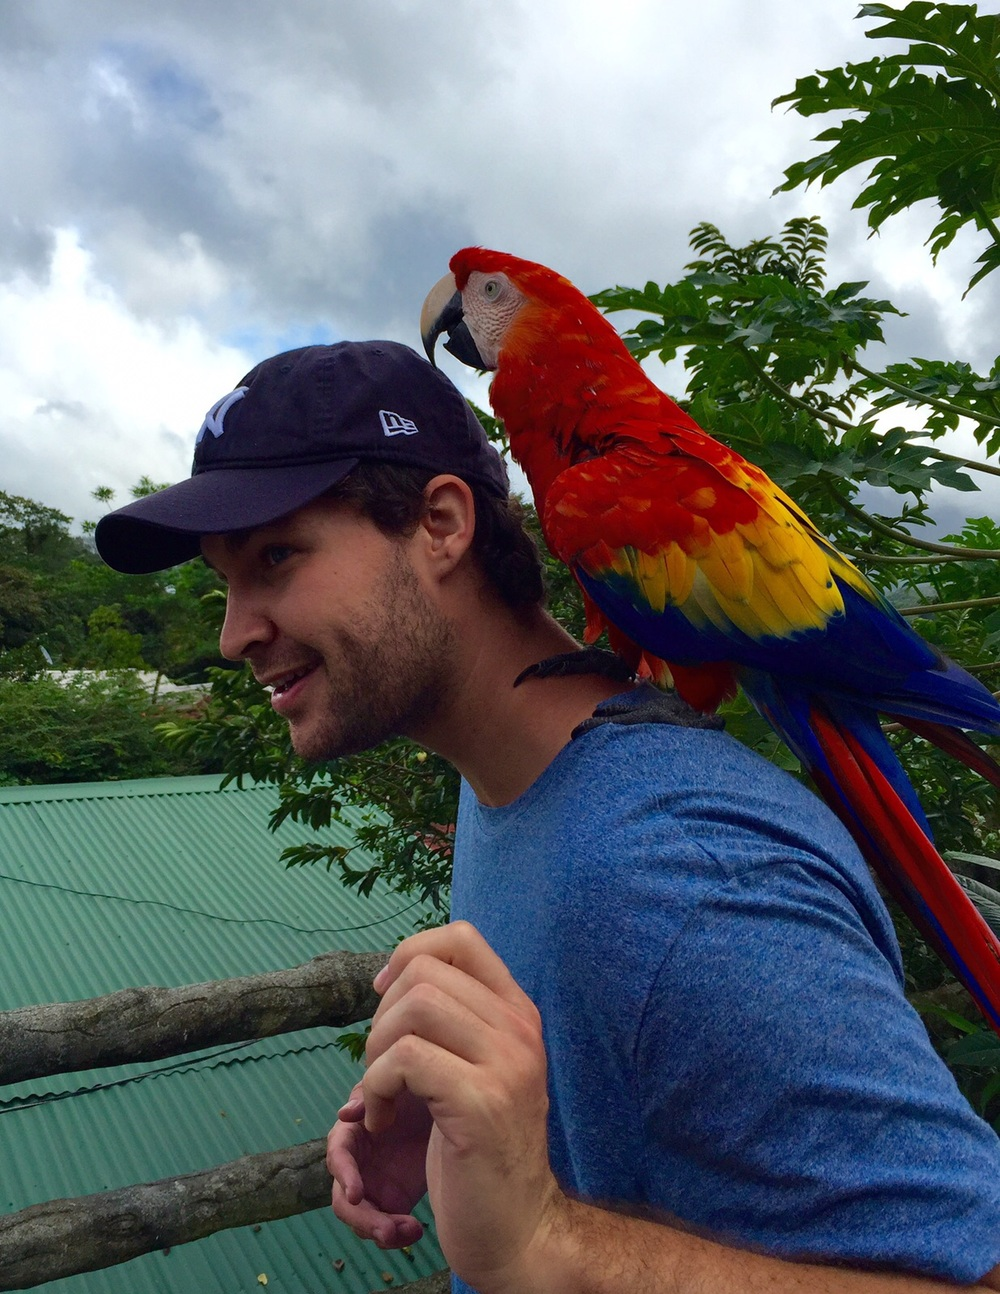 GYV contributor Julien Philippe during his trip to Costa Rica. Credit: Michel Philippe